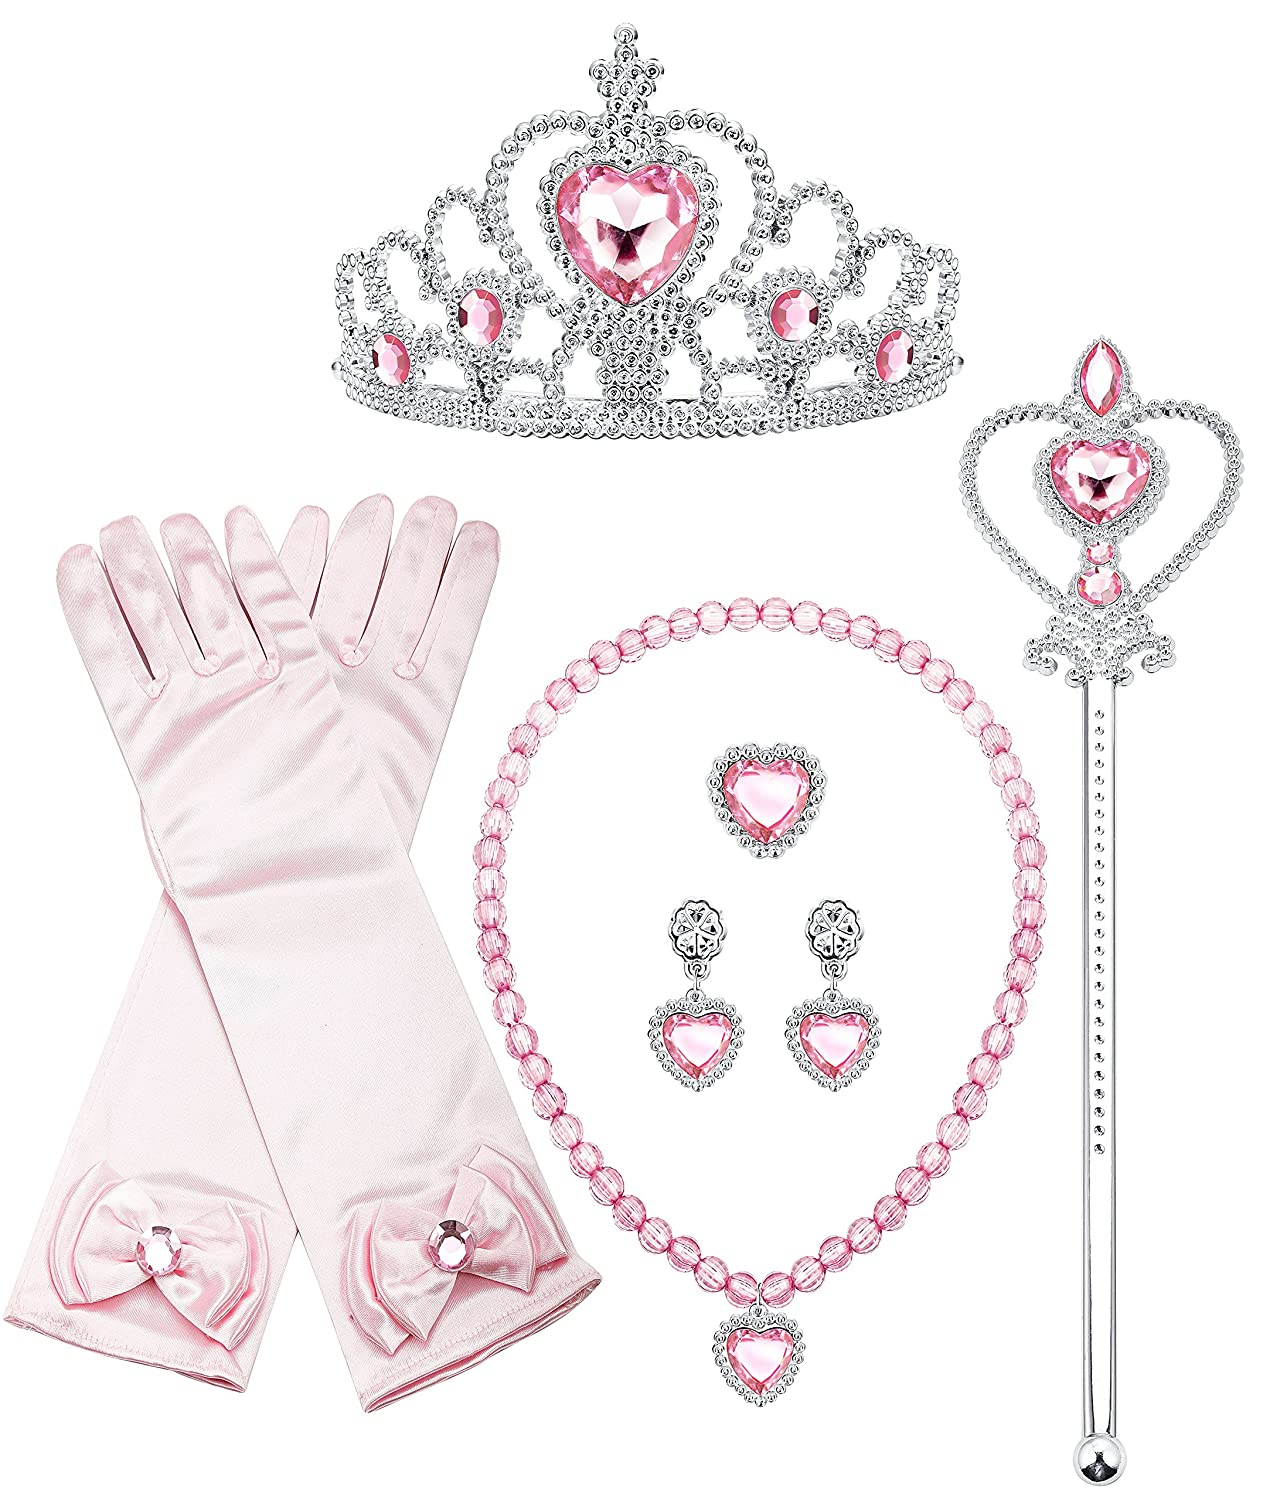 Finrezio 8 Pcs Sofia Princess Aurora Dress up Cosplay Set Girls Costume Party Favor Jewelry Set Aurora Dress up Gloves Crown Wand Necklace Earrings Ring Kids